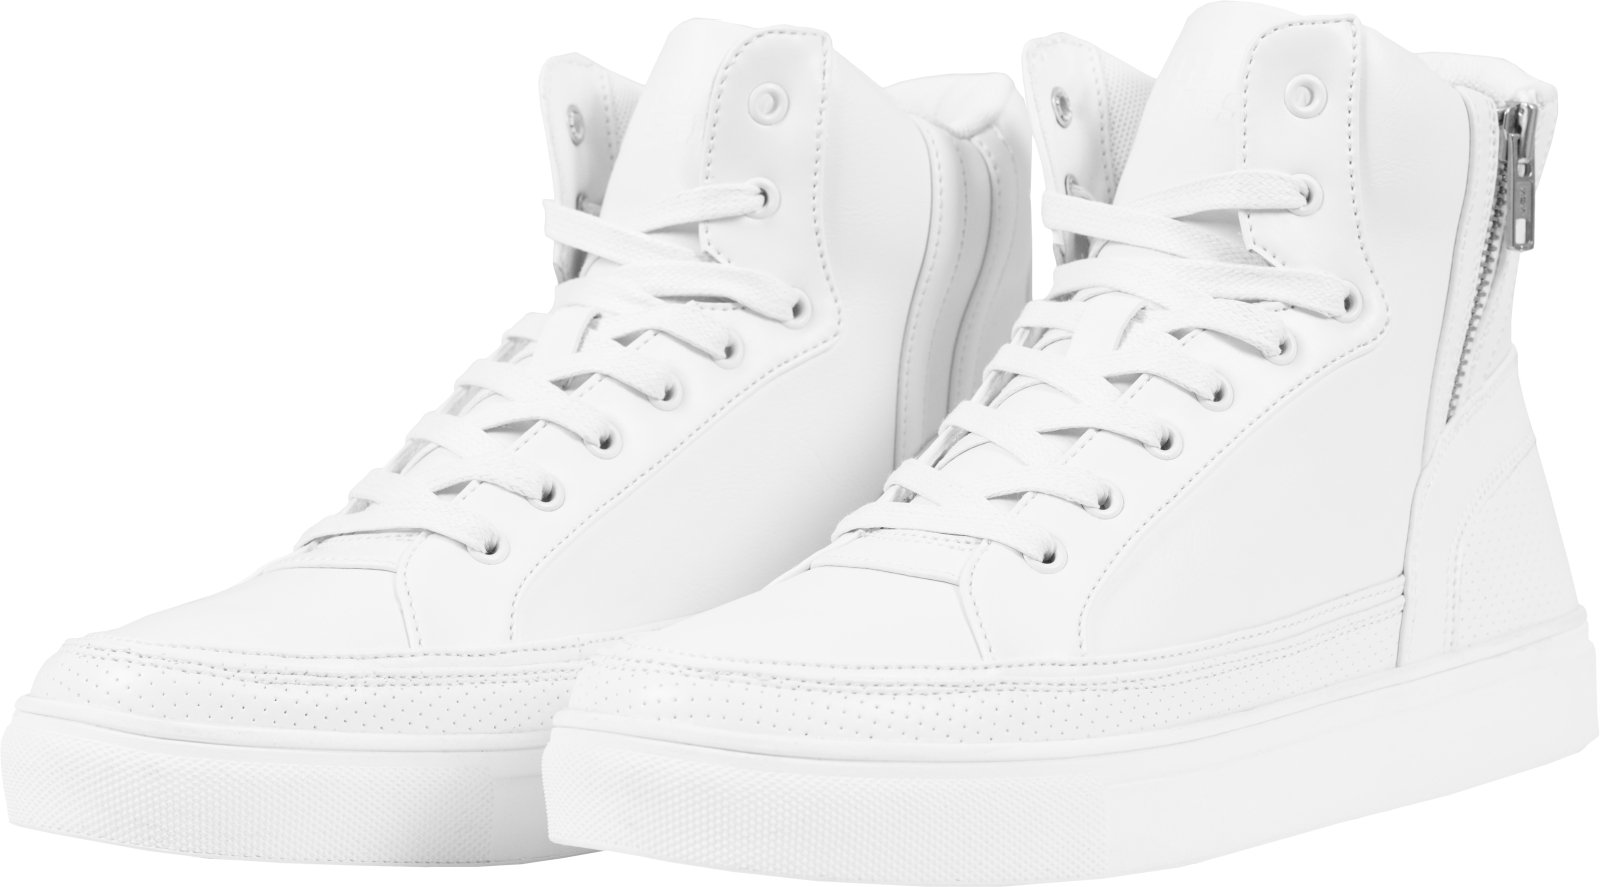 Basses High Classics AdulteWeißwhite Zipper Urban Eu Top ShoeBaskets Mixte 22041 roCxeWBEQd